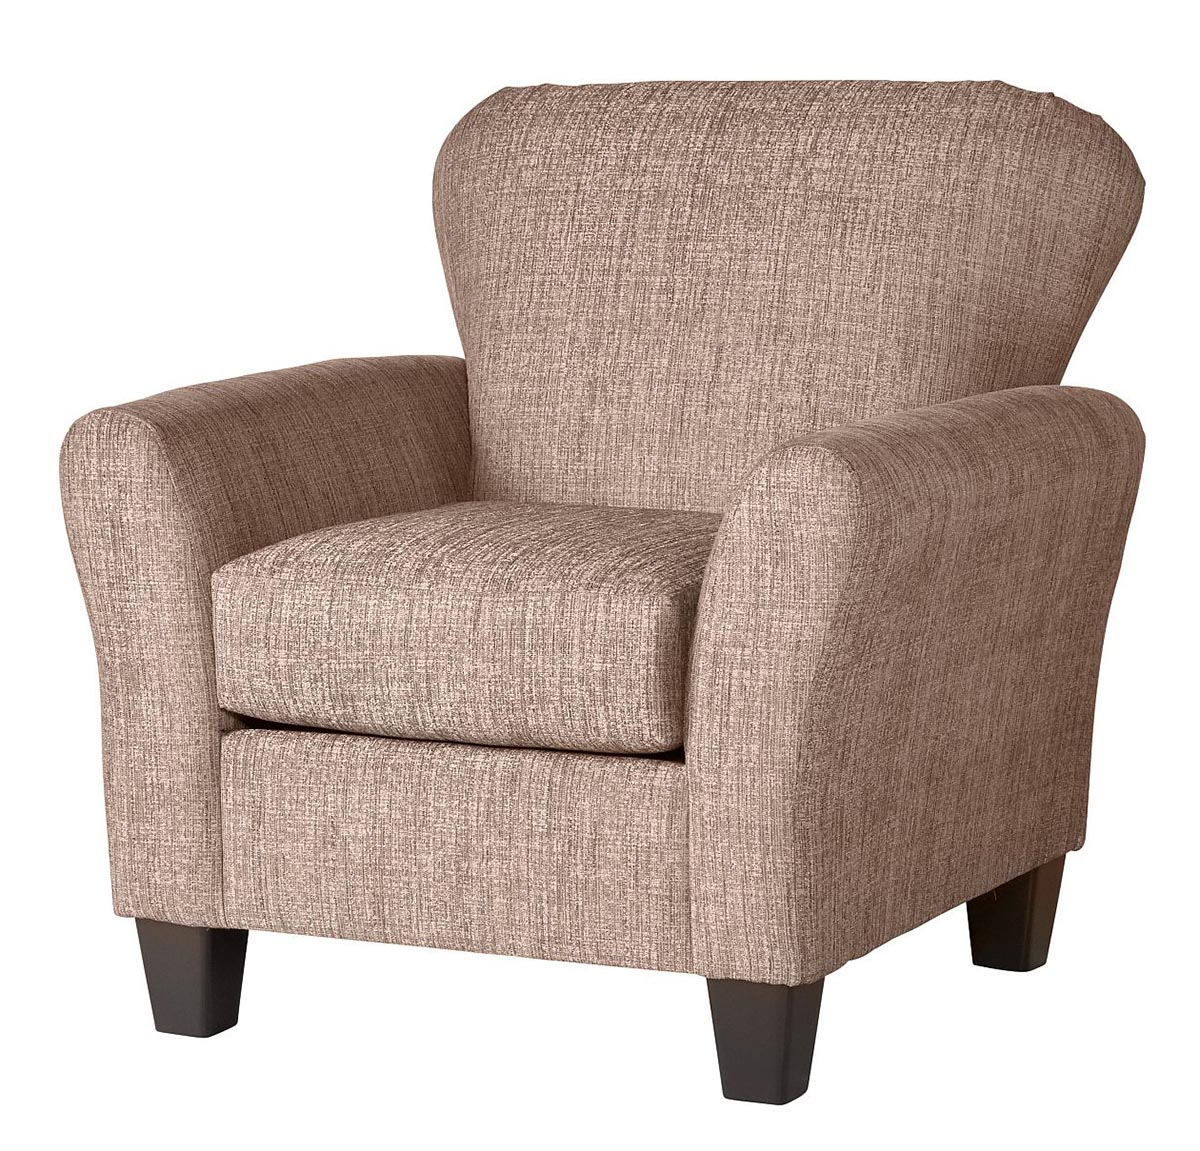 3010 Serta Accent Chair Heather